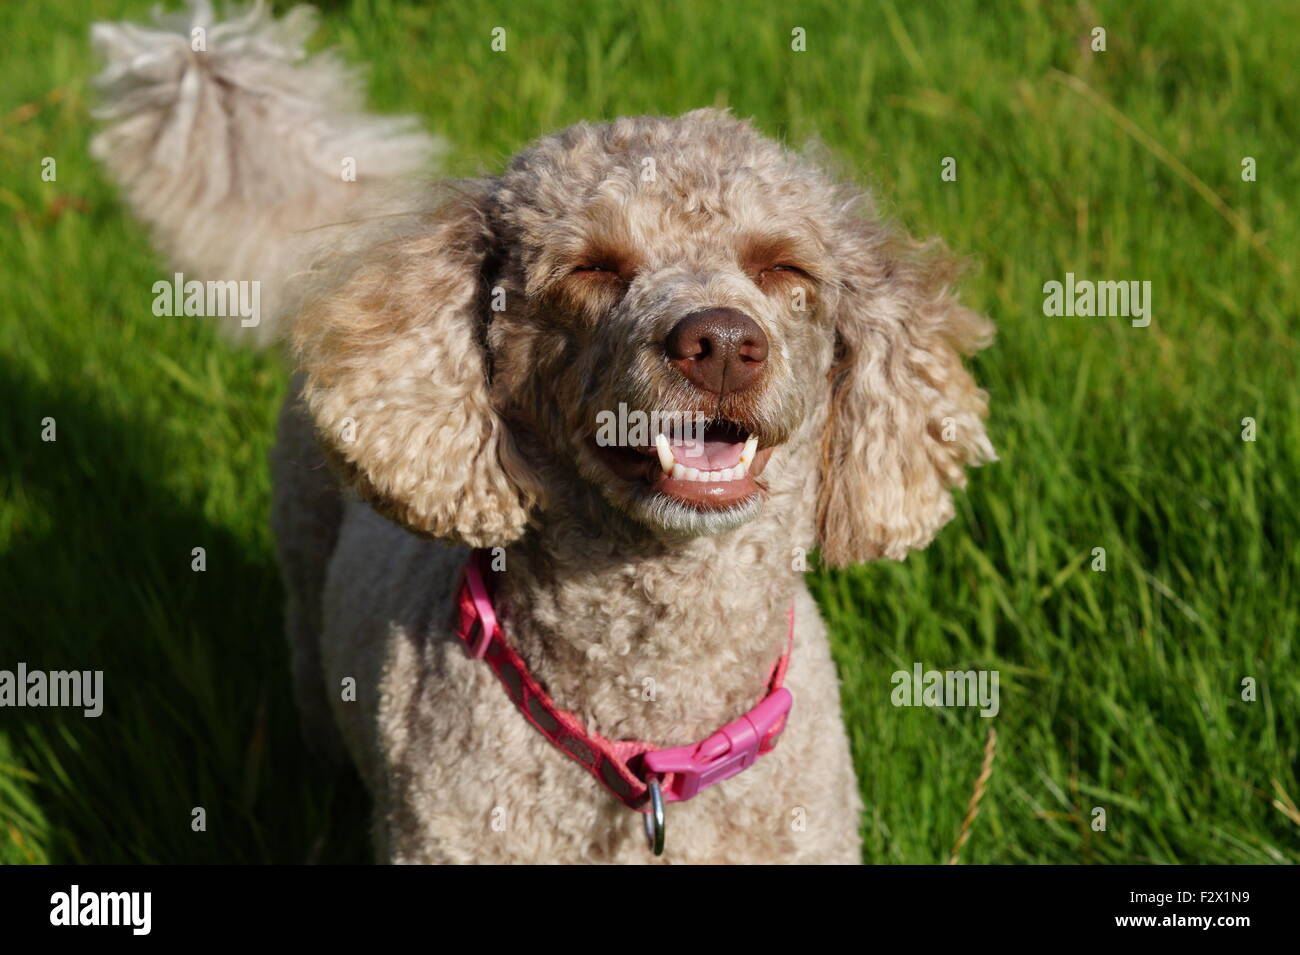 Fluffy, Brown Miniature Poodle with sun in her eyes teeth and tongue showing facing camera - Stock Image